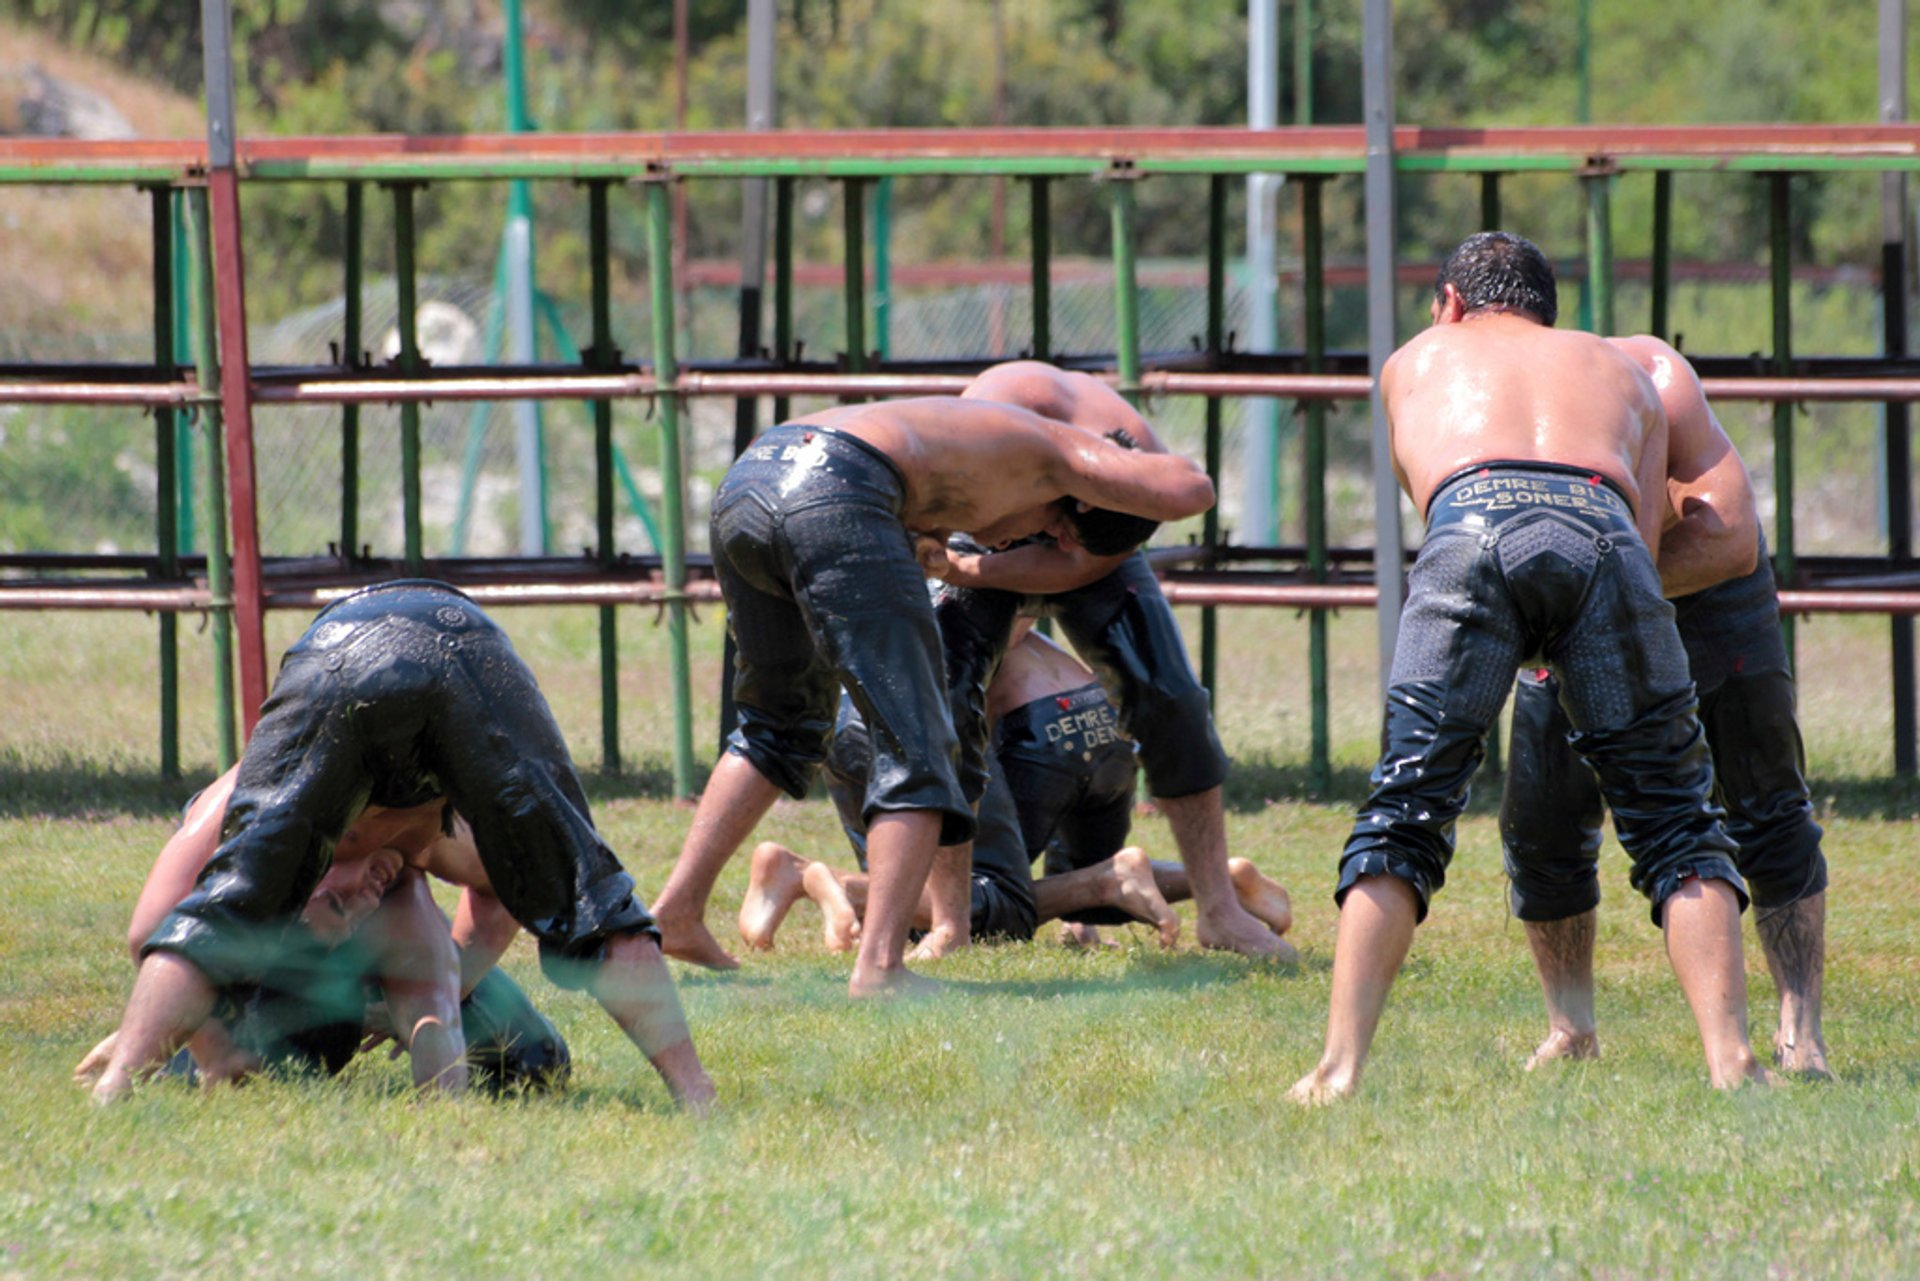 Kırkpınar Oil Wrestling in Turkey 2020 - Best Time